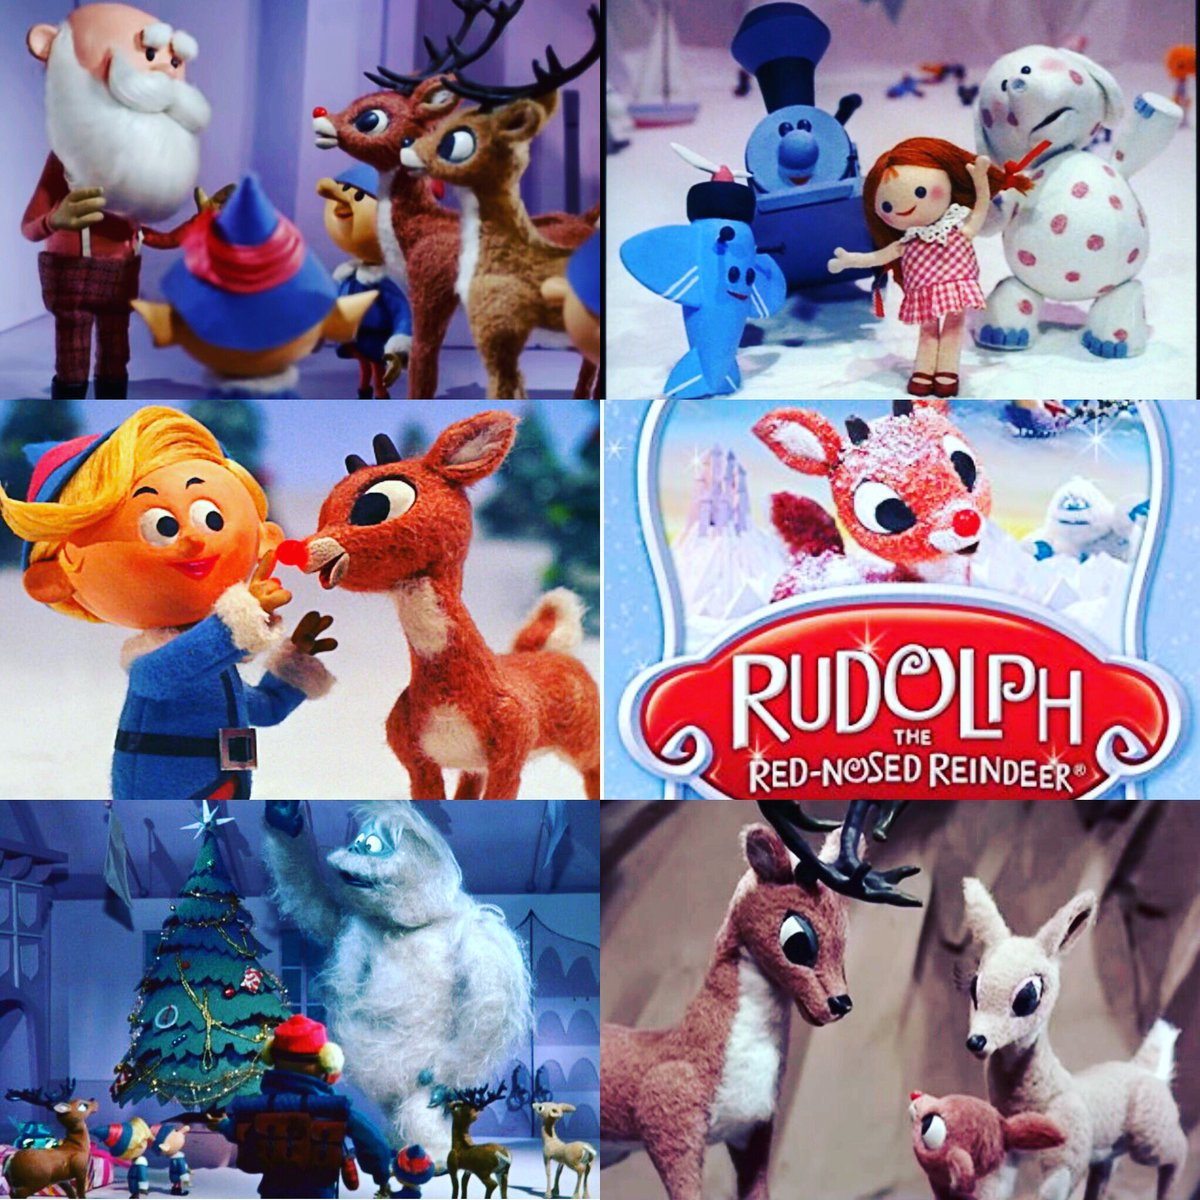 Rudolph Christmas Special.80sthen80snow On Twitter Christmas Special Of The Day